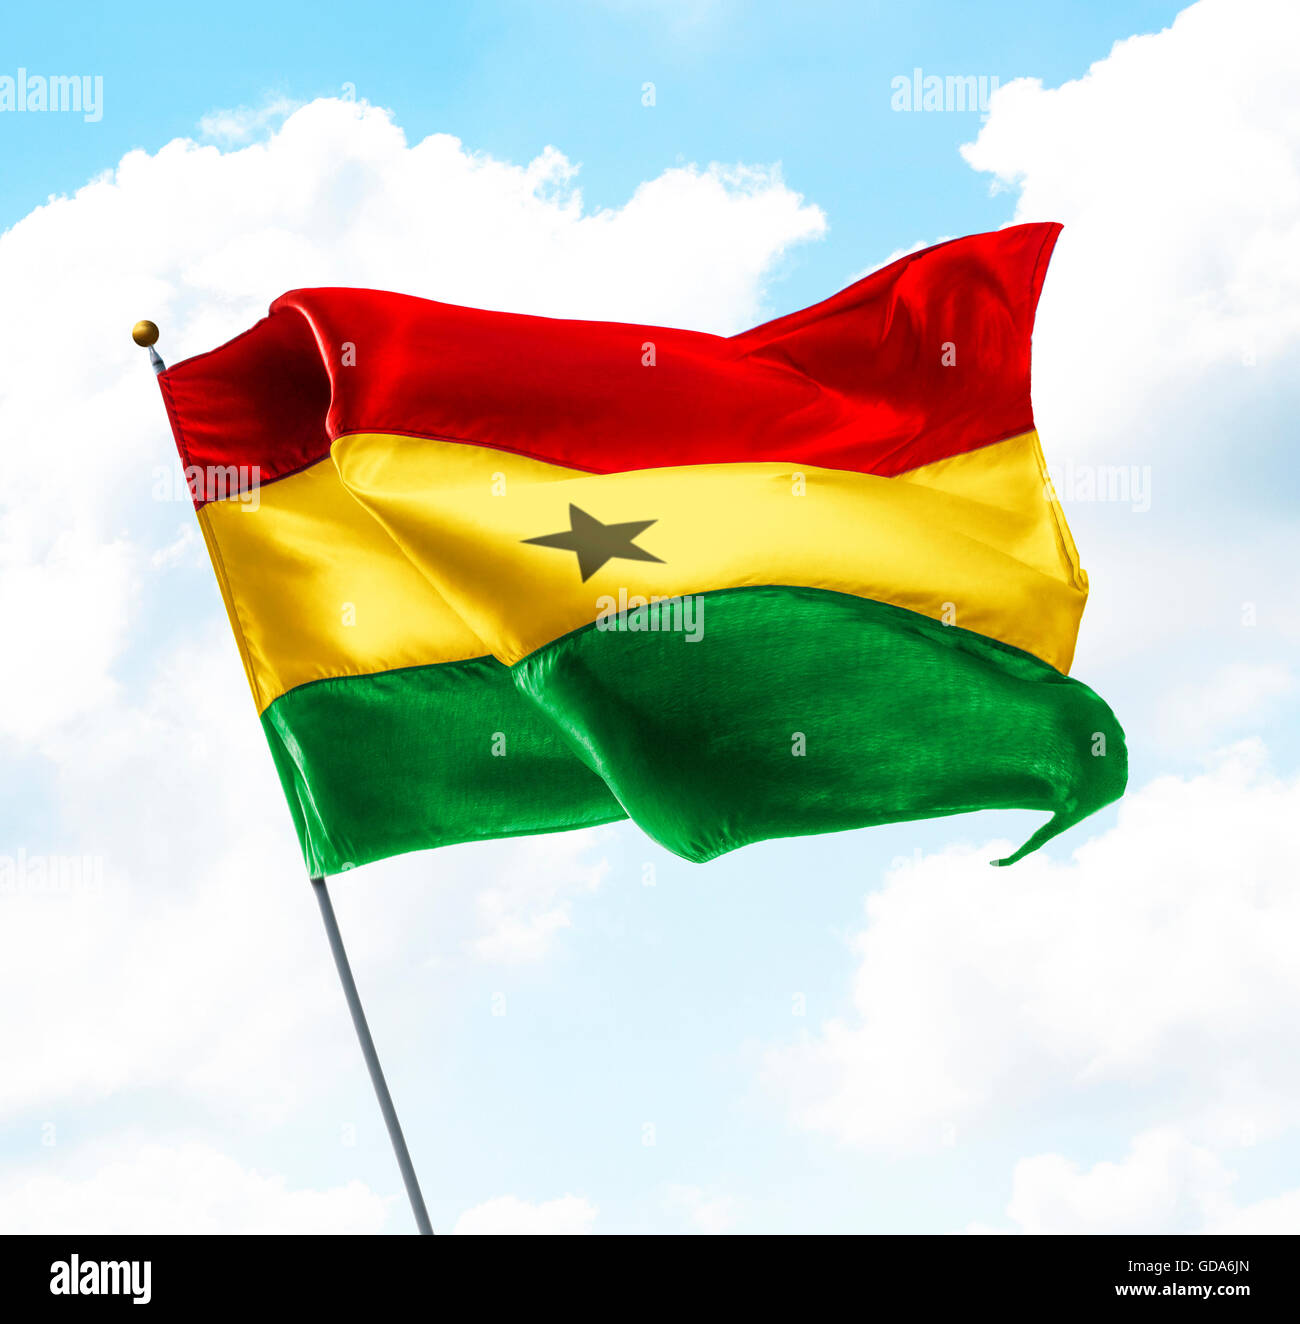 Flag of Ghana Raised Up in The Sky - Stock Image